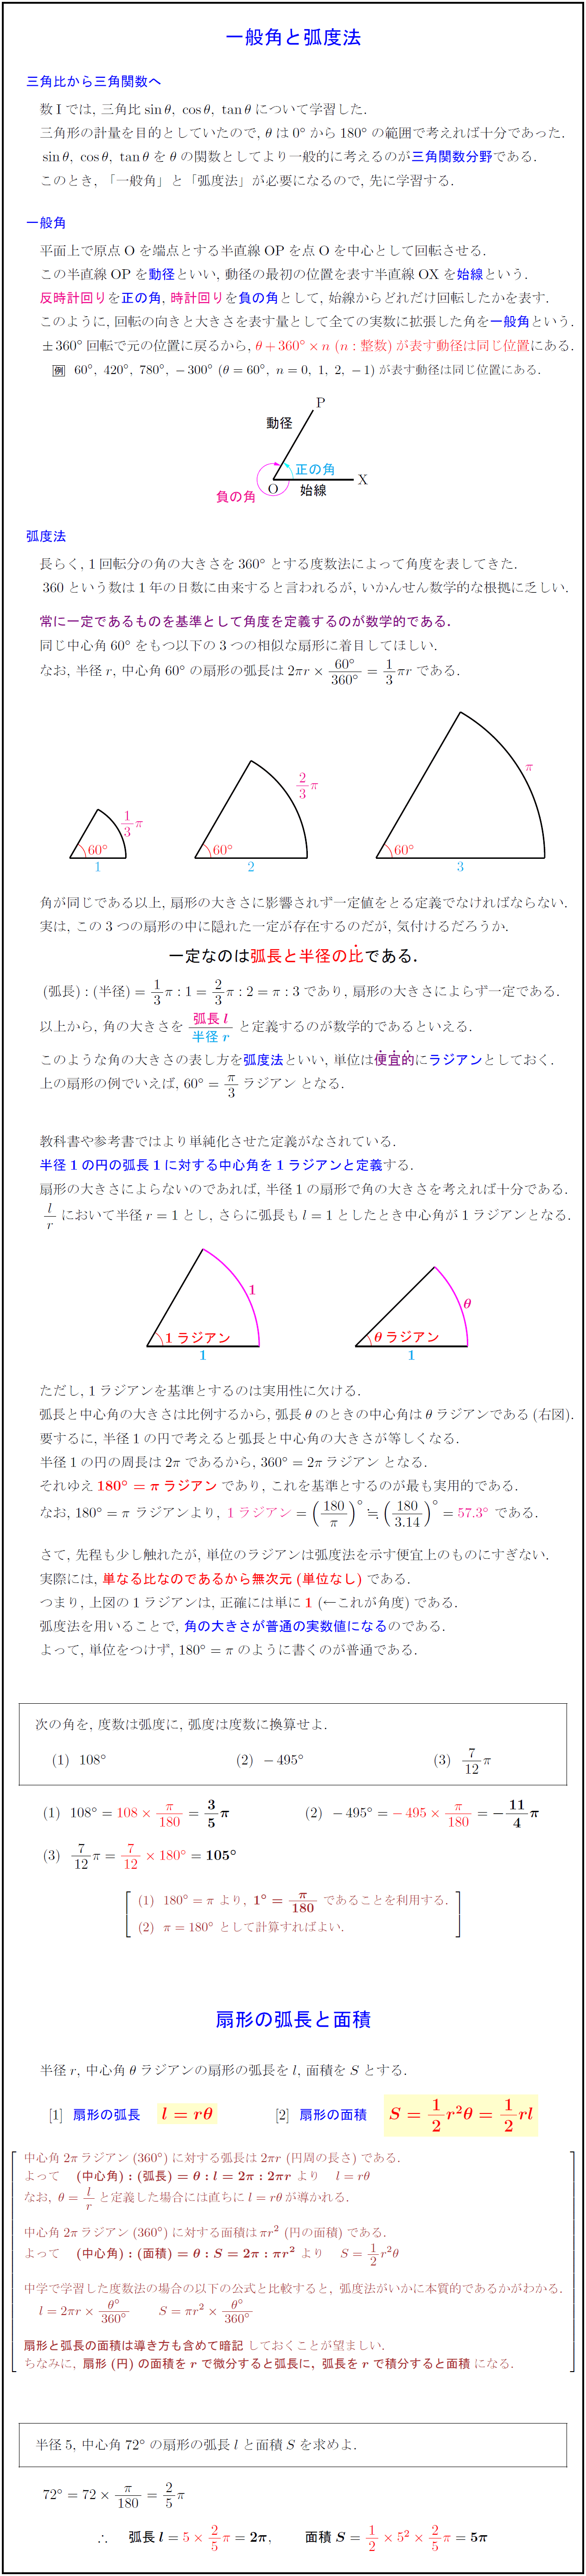 complex-number-equality